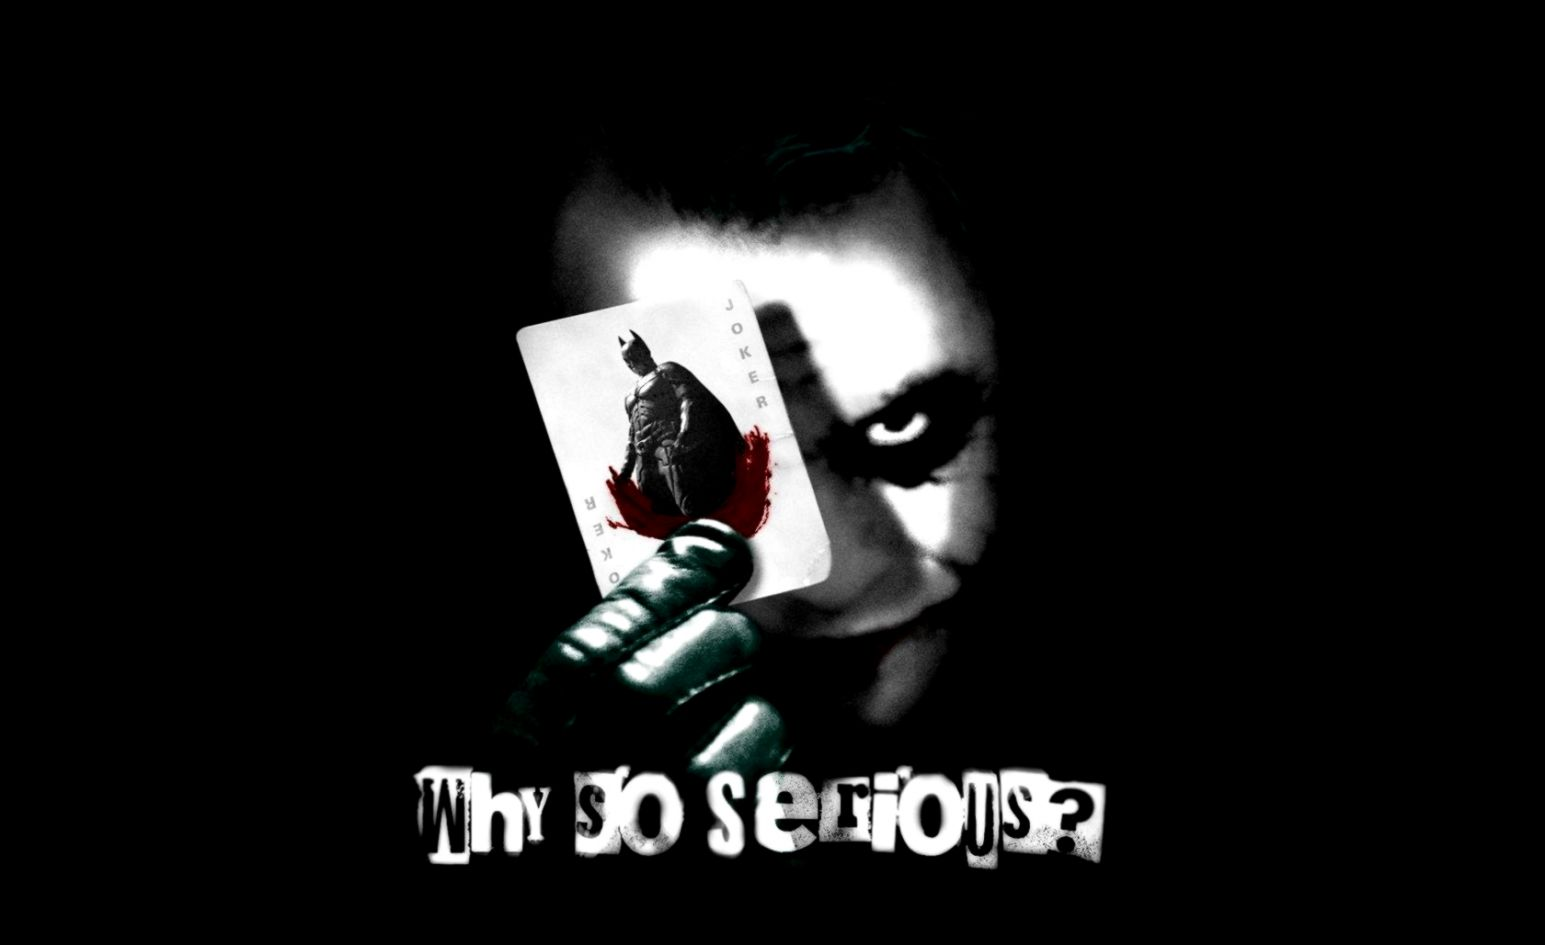 Why so serious joker wallpaper and background image 1680x1050